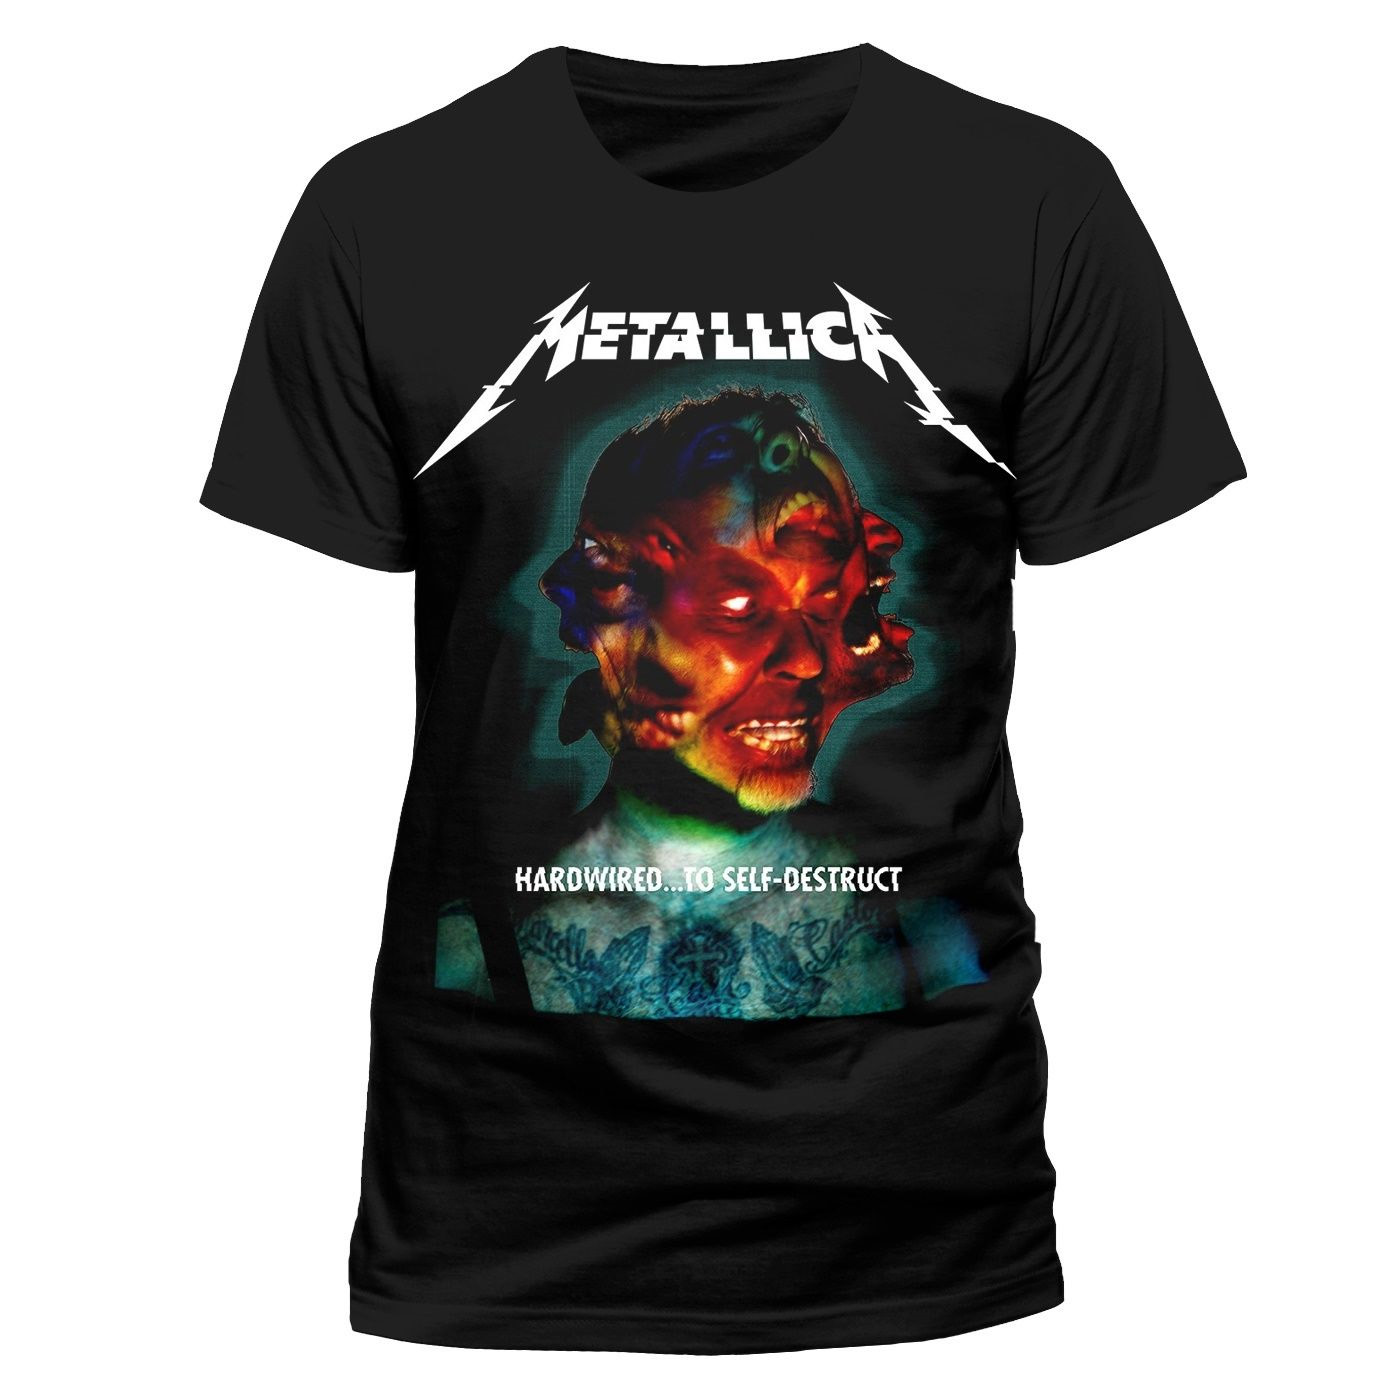 Official-T-Shirt-METALLICA-Hardwired-To-Self-Destruct-ALBUM-Cover-All-Sizes thumbnail 11